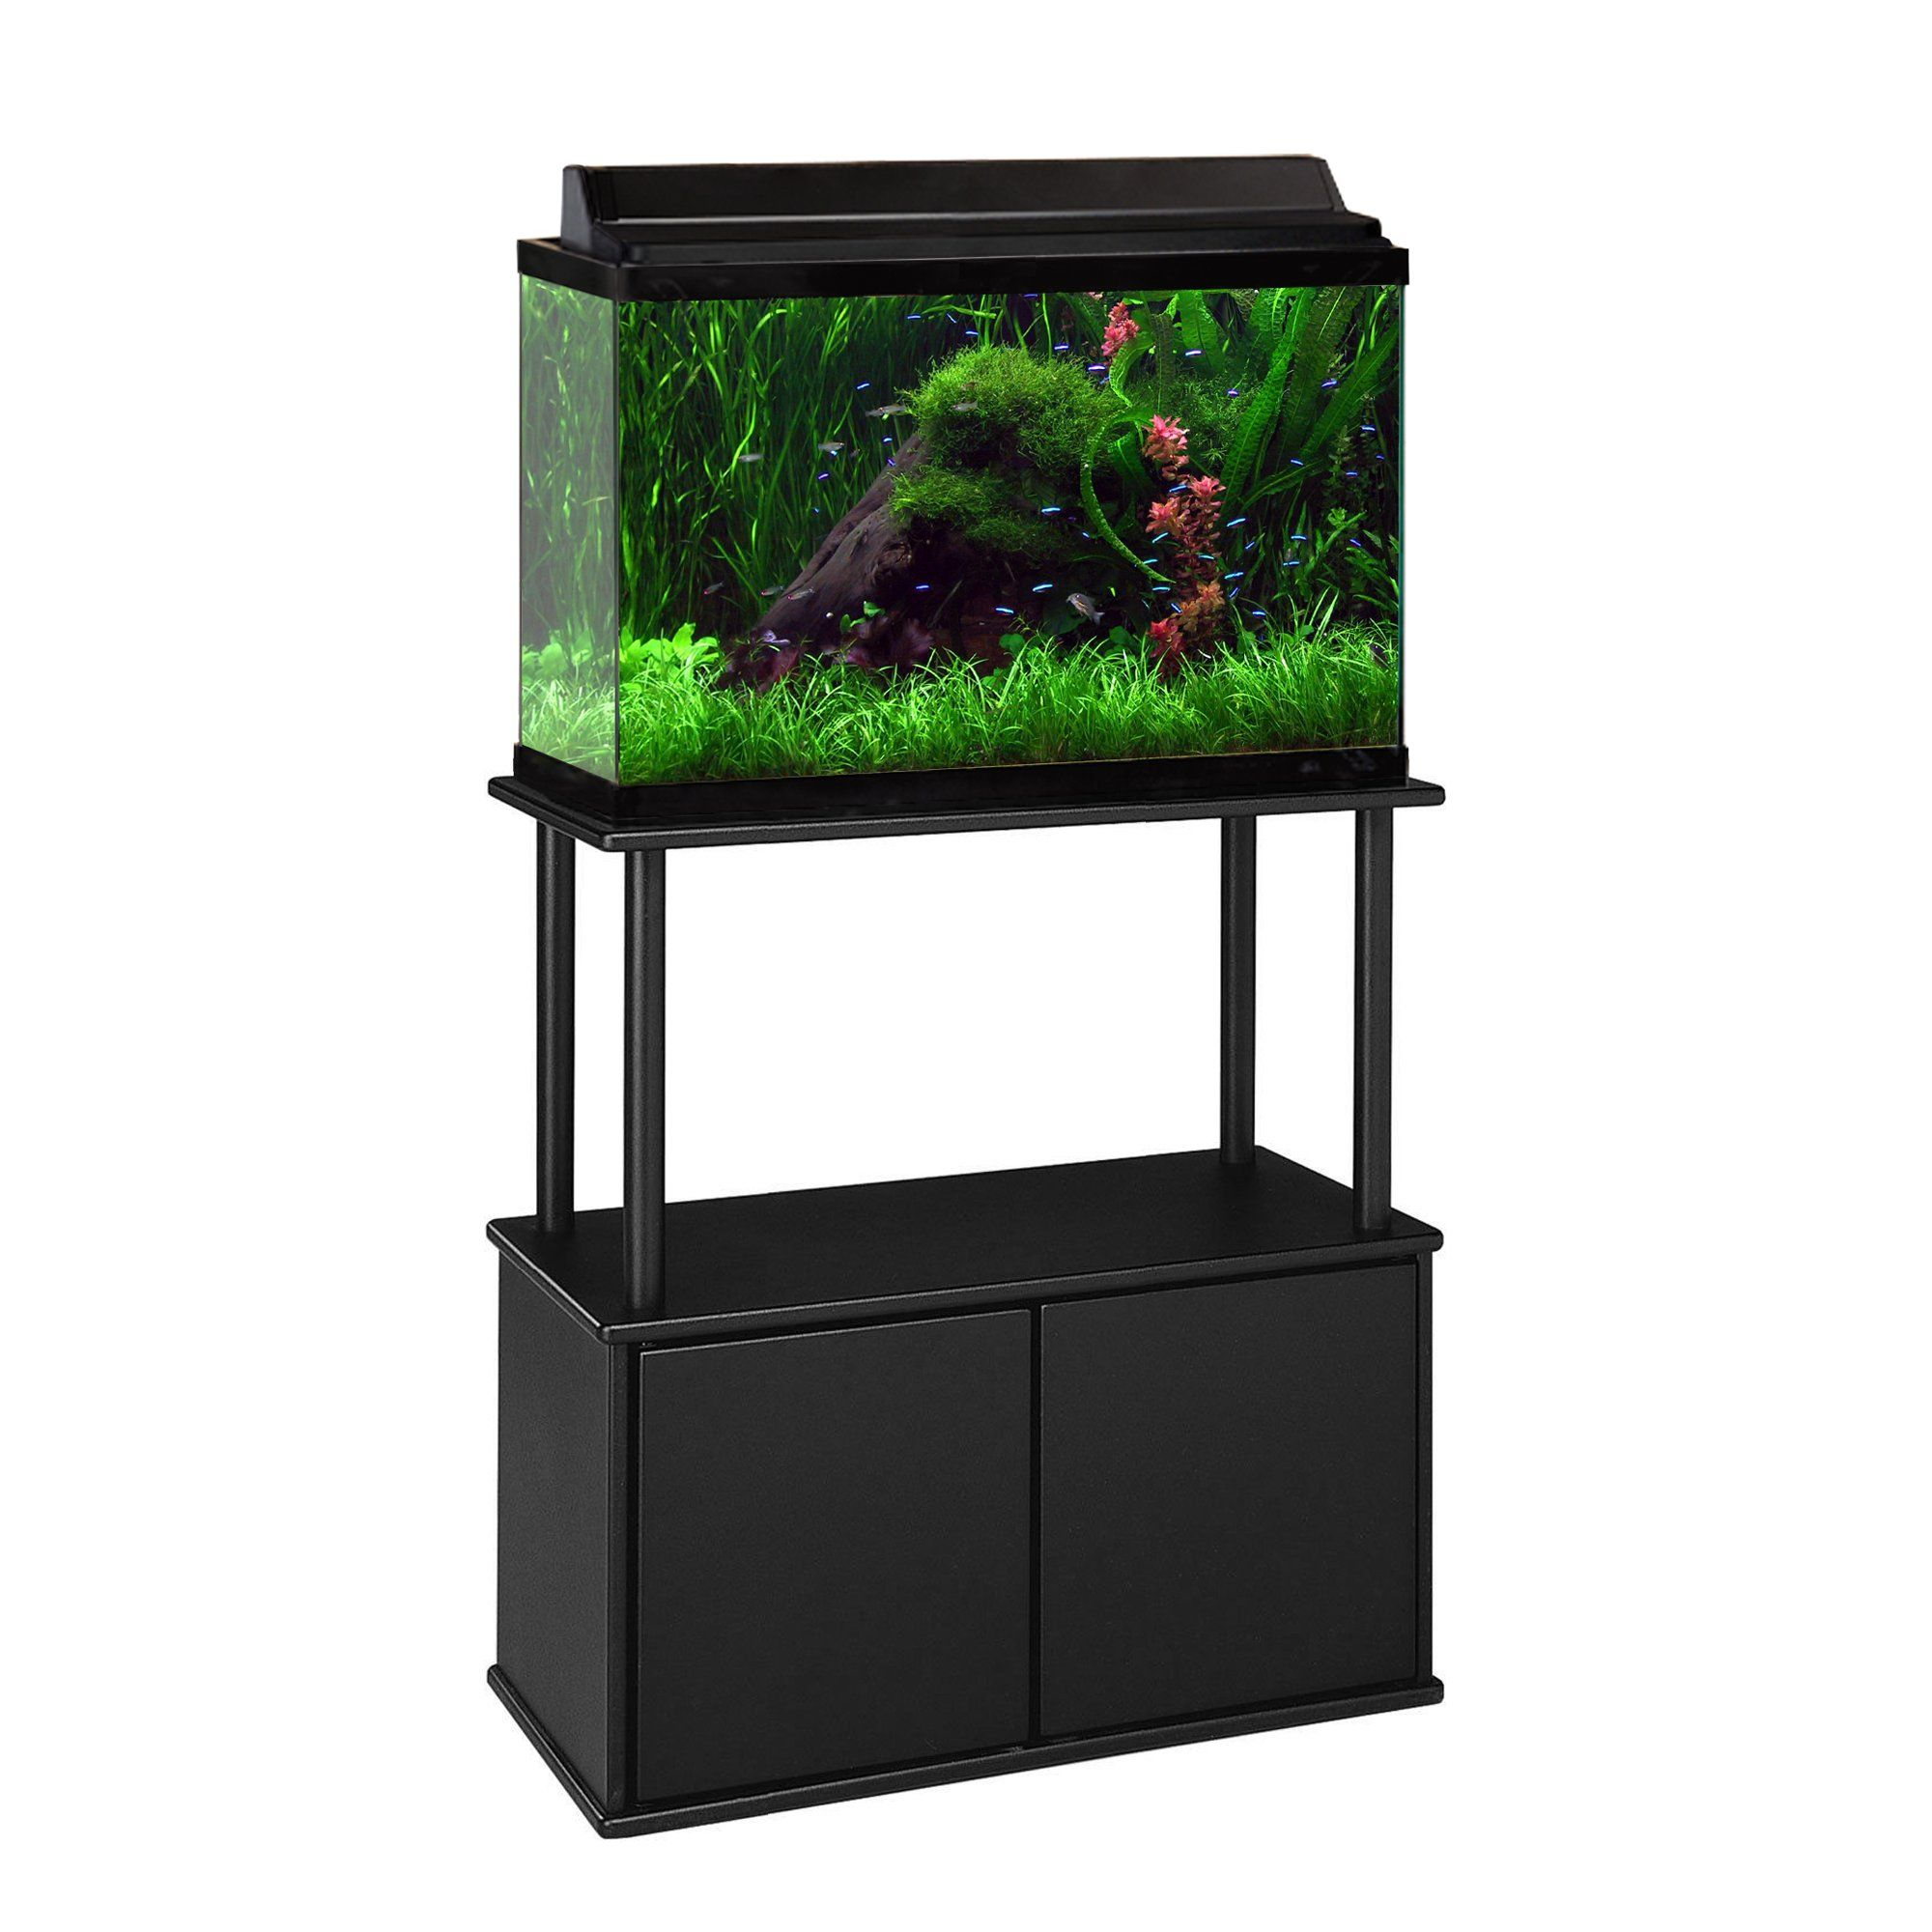 Seaclear 29 Gallon Rectangular Aquarium Combo Clear 30 Gallon Fish Tank Acrylic Aquarium Aquarium